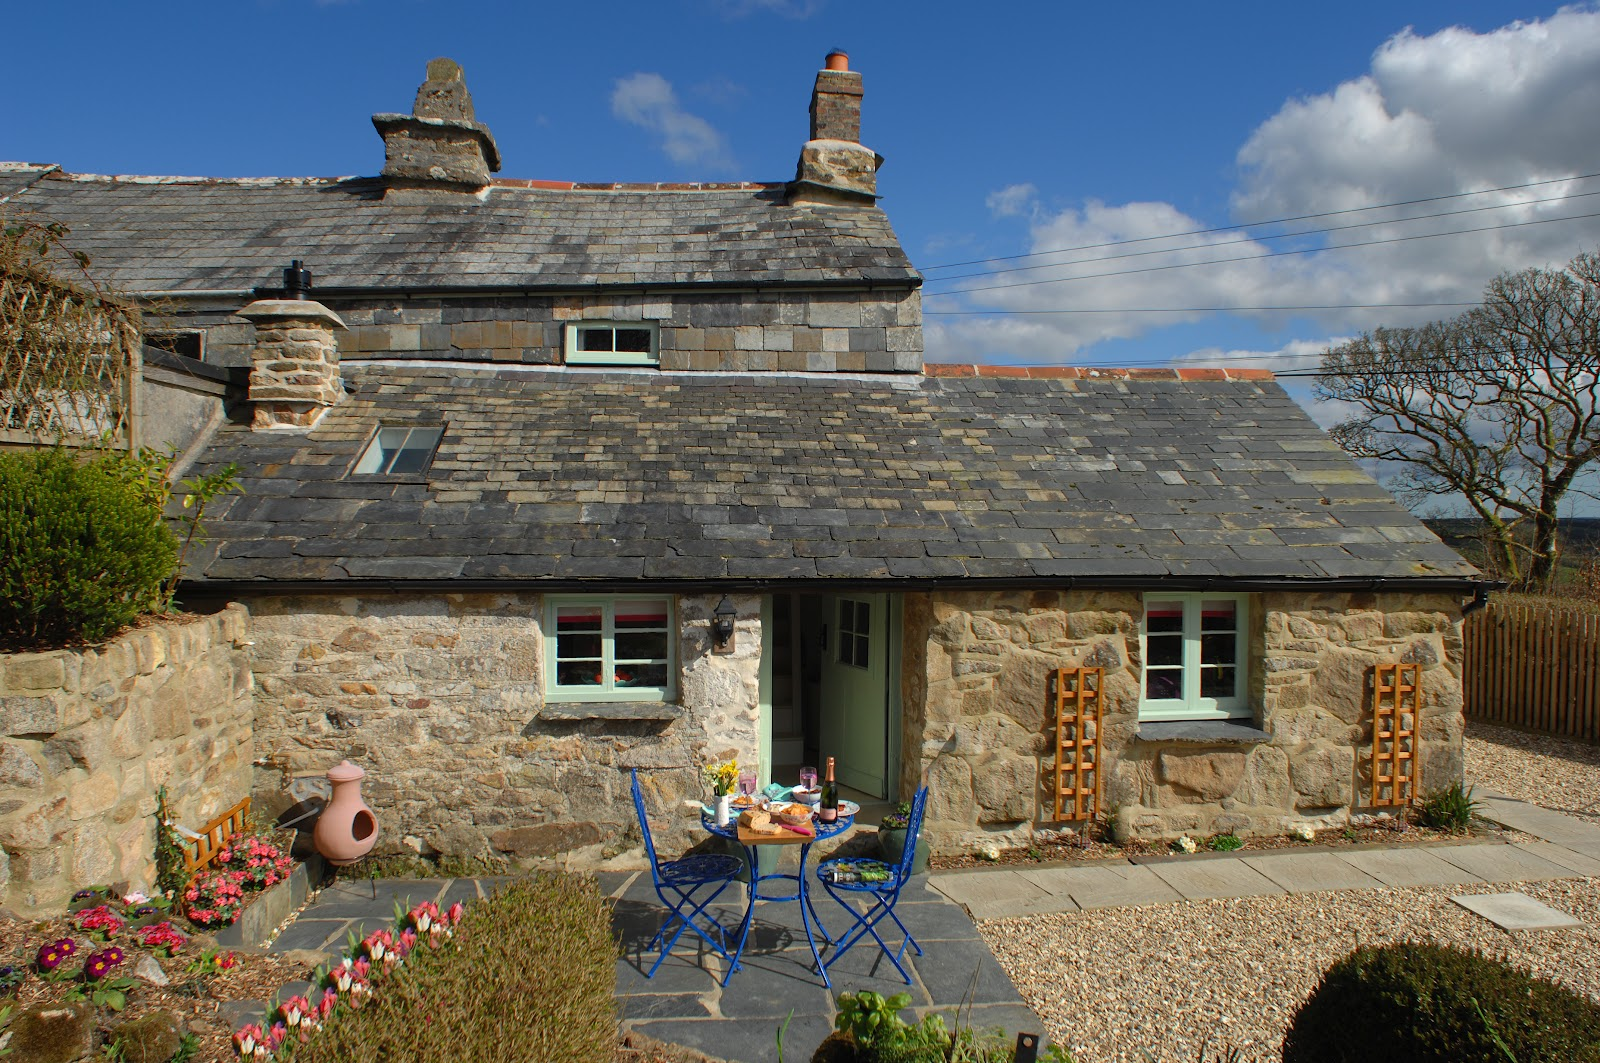 Unique Home Stays a joyful cottage a tour of pixie nook cottage in cornwall